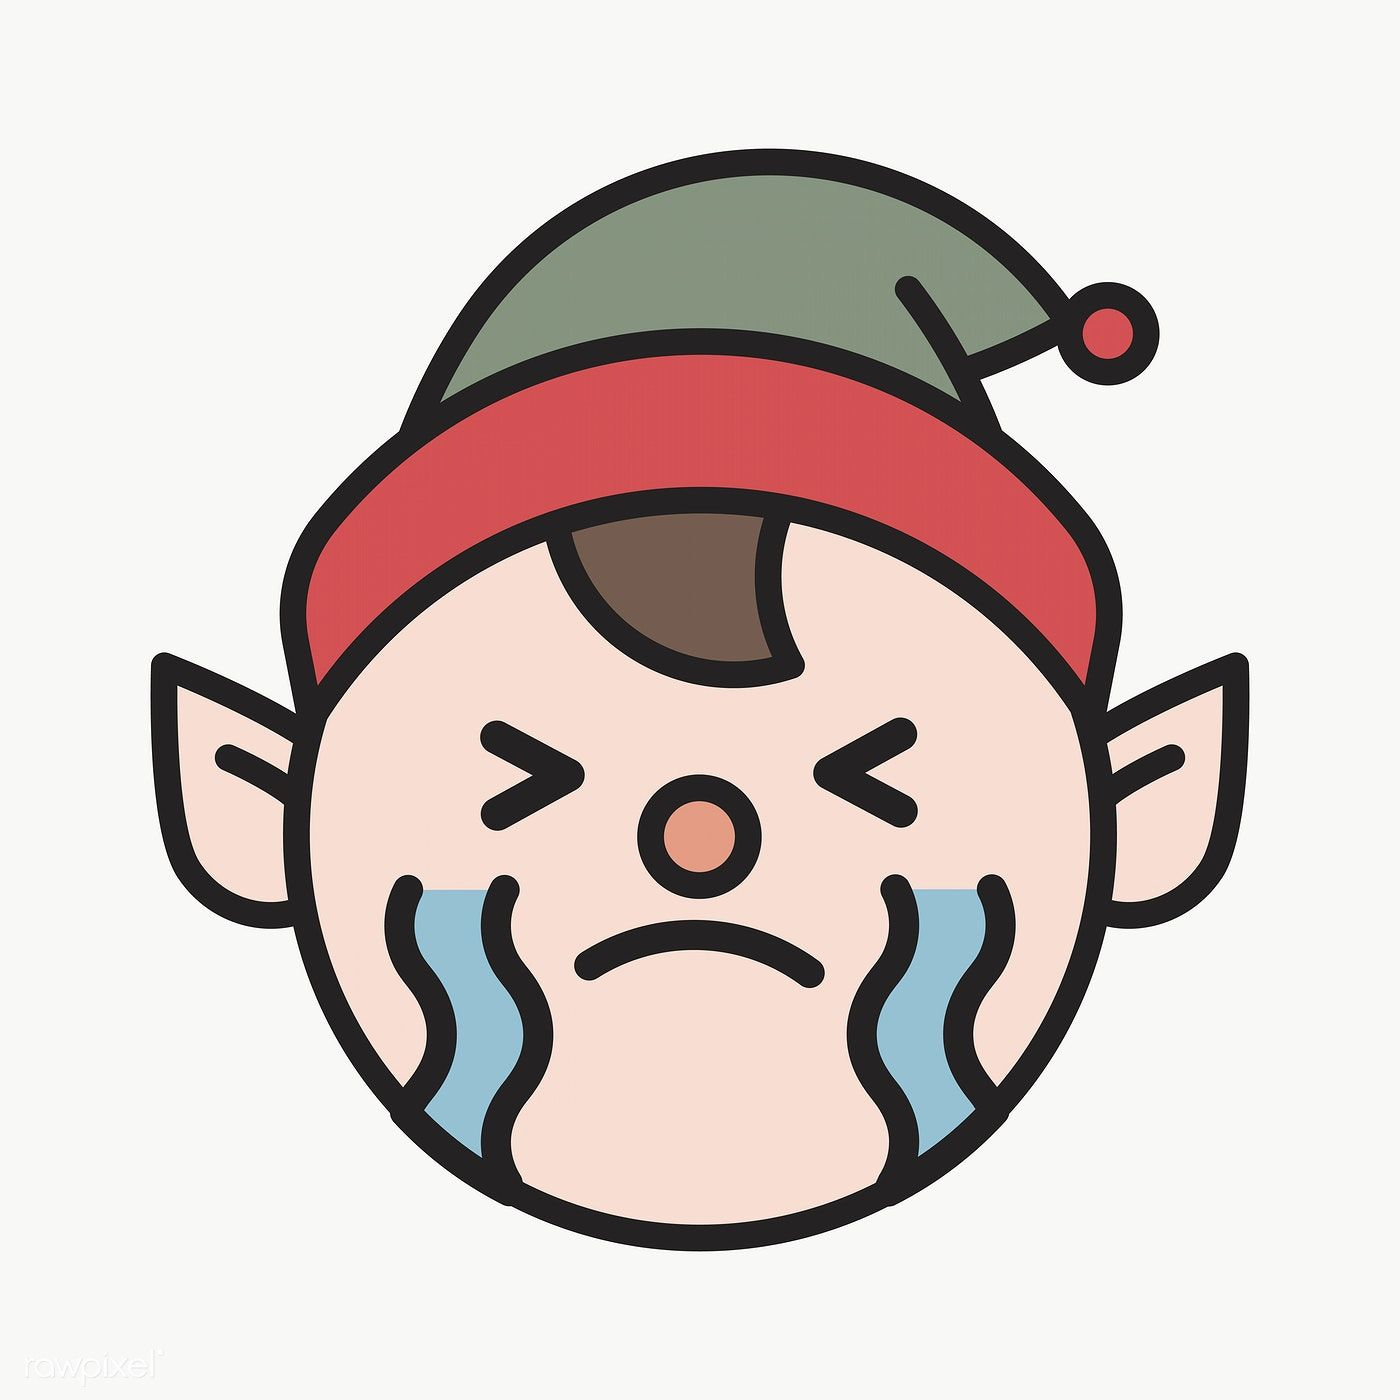 Elf Crying Emoticon On Transparent Background Vector Premium Image By Rawpixel Com Wan Vector Background Pattern Background Patterns Emoticon